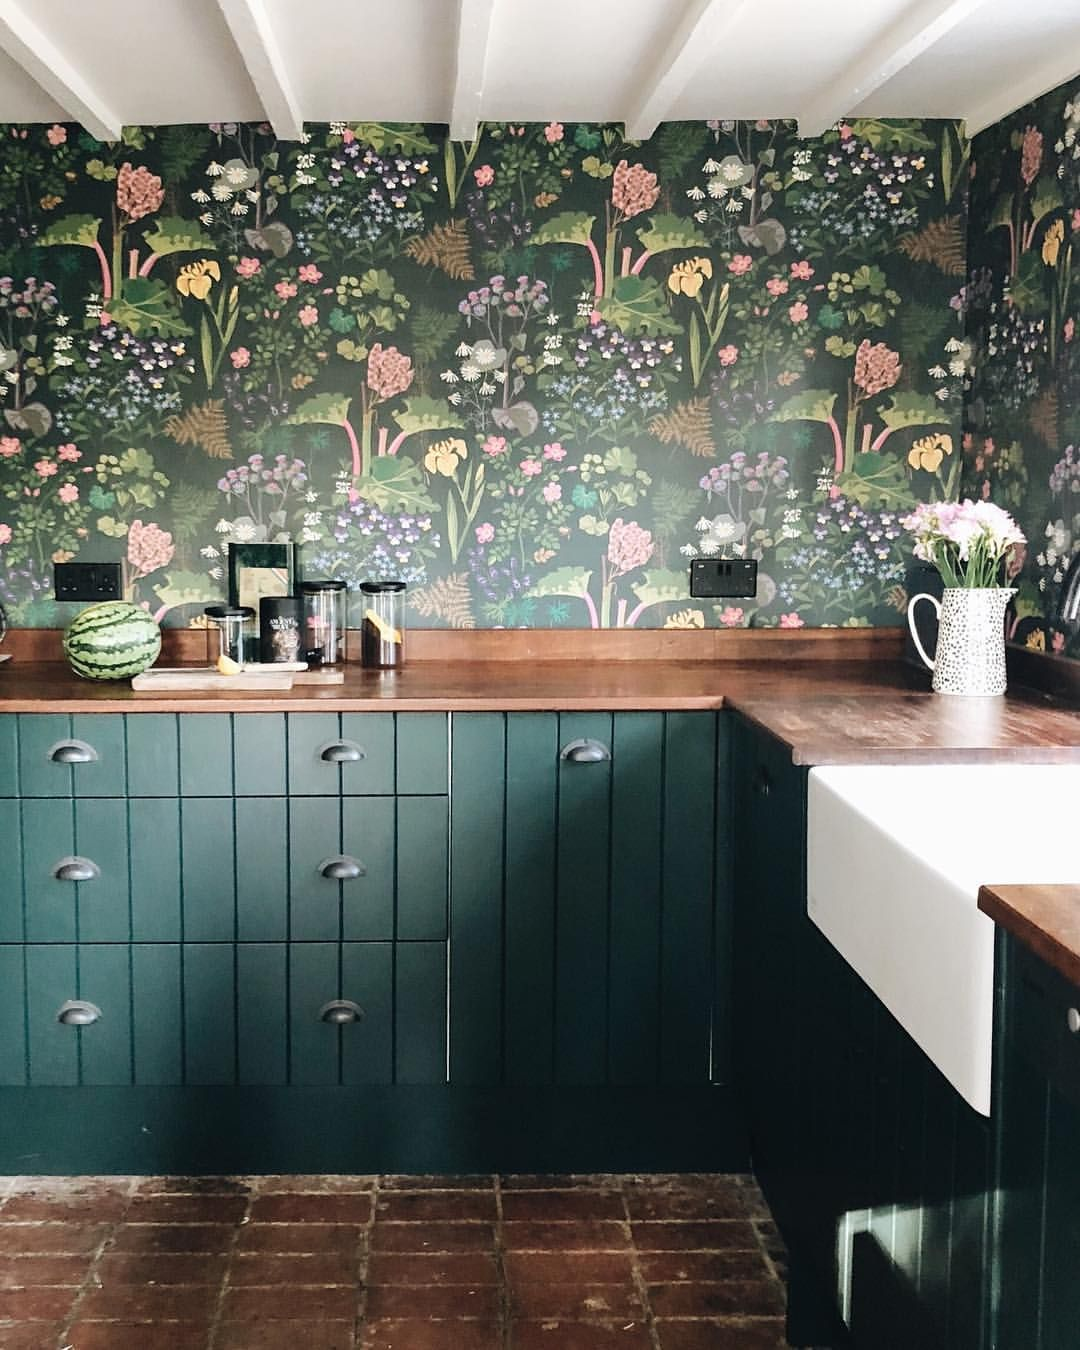 example of wallpaper in a kitchen remodel